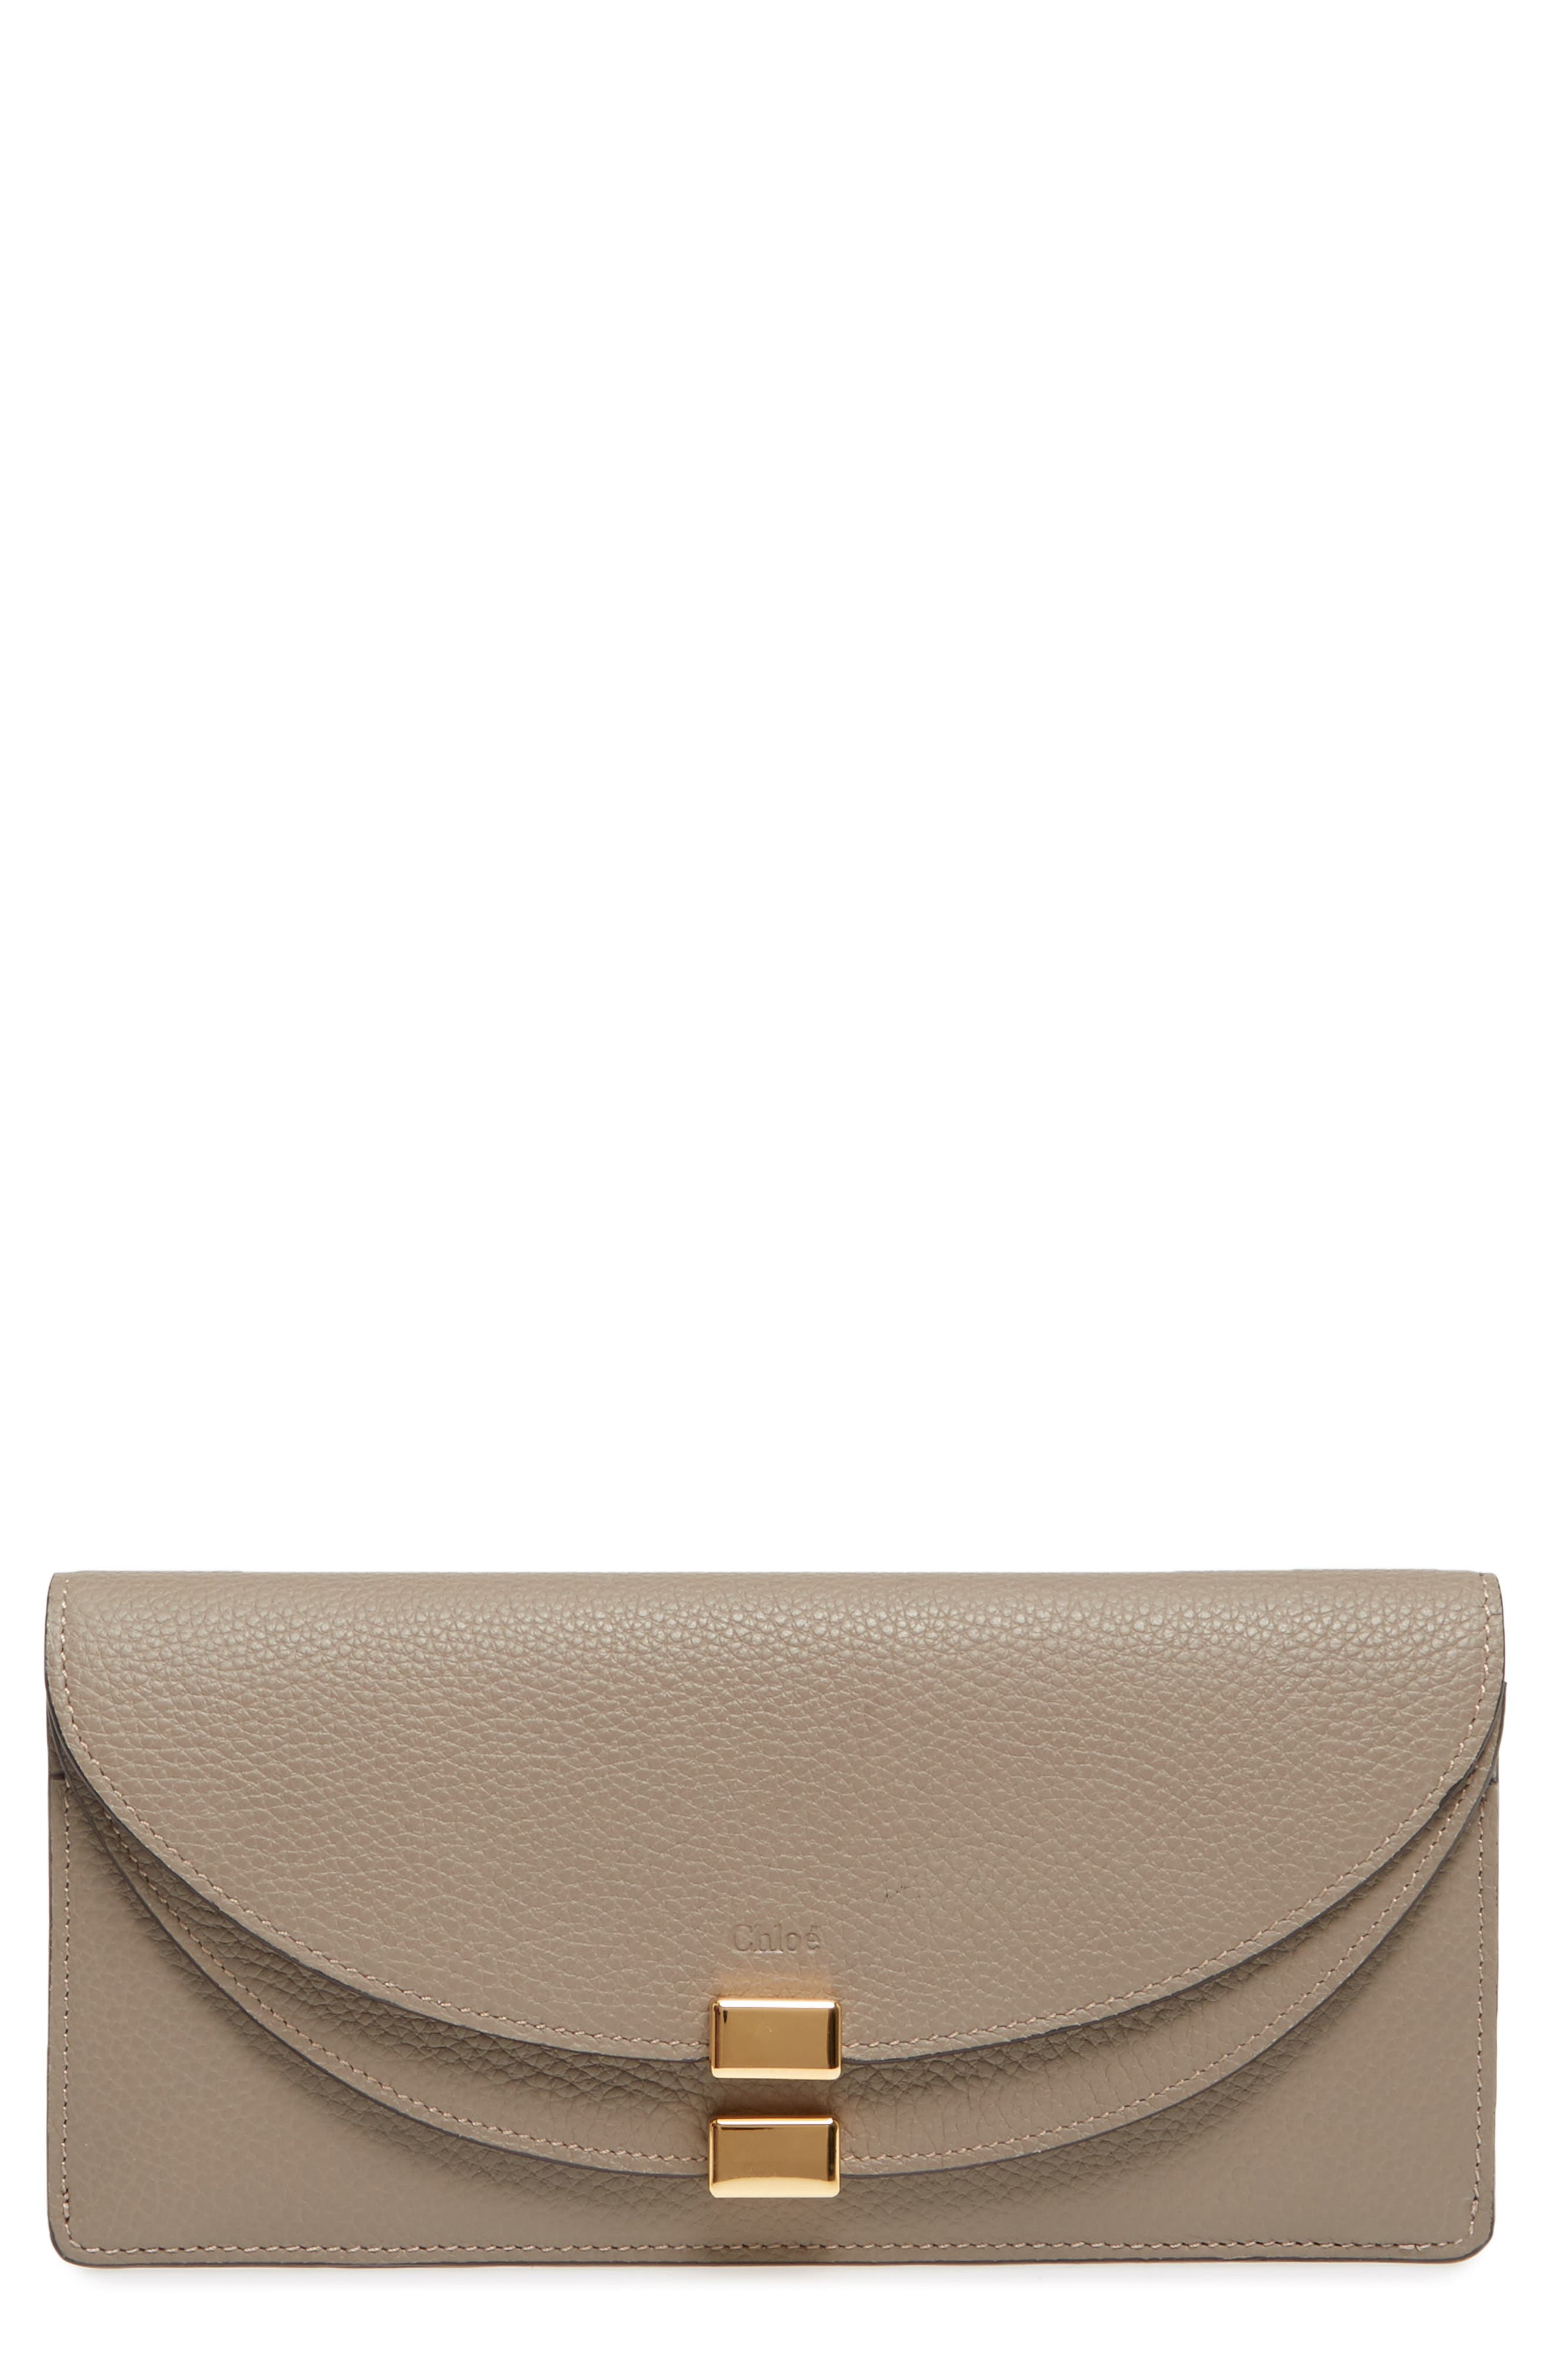 Alternate Image 1 Selected - Chloé Georgia Continental Leather Wallet